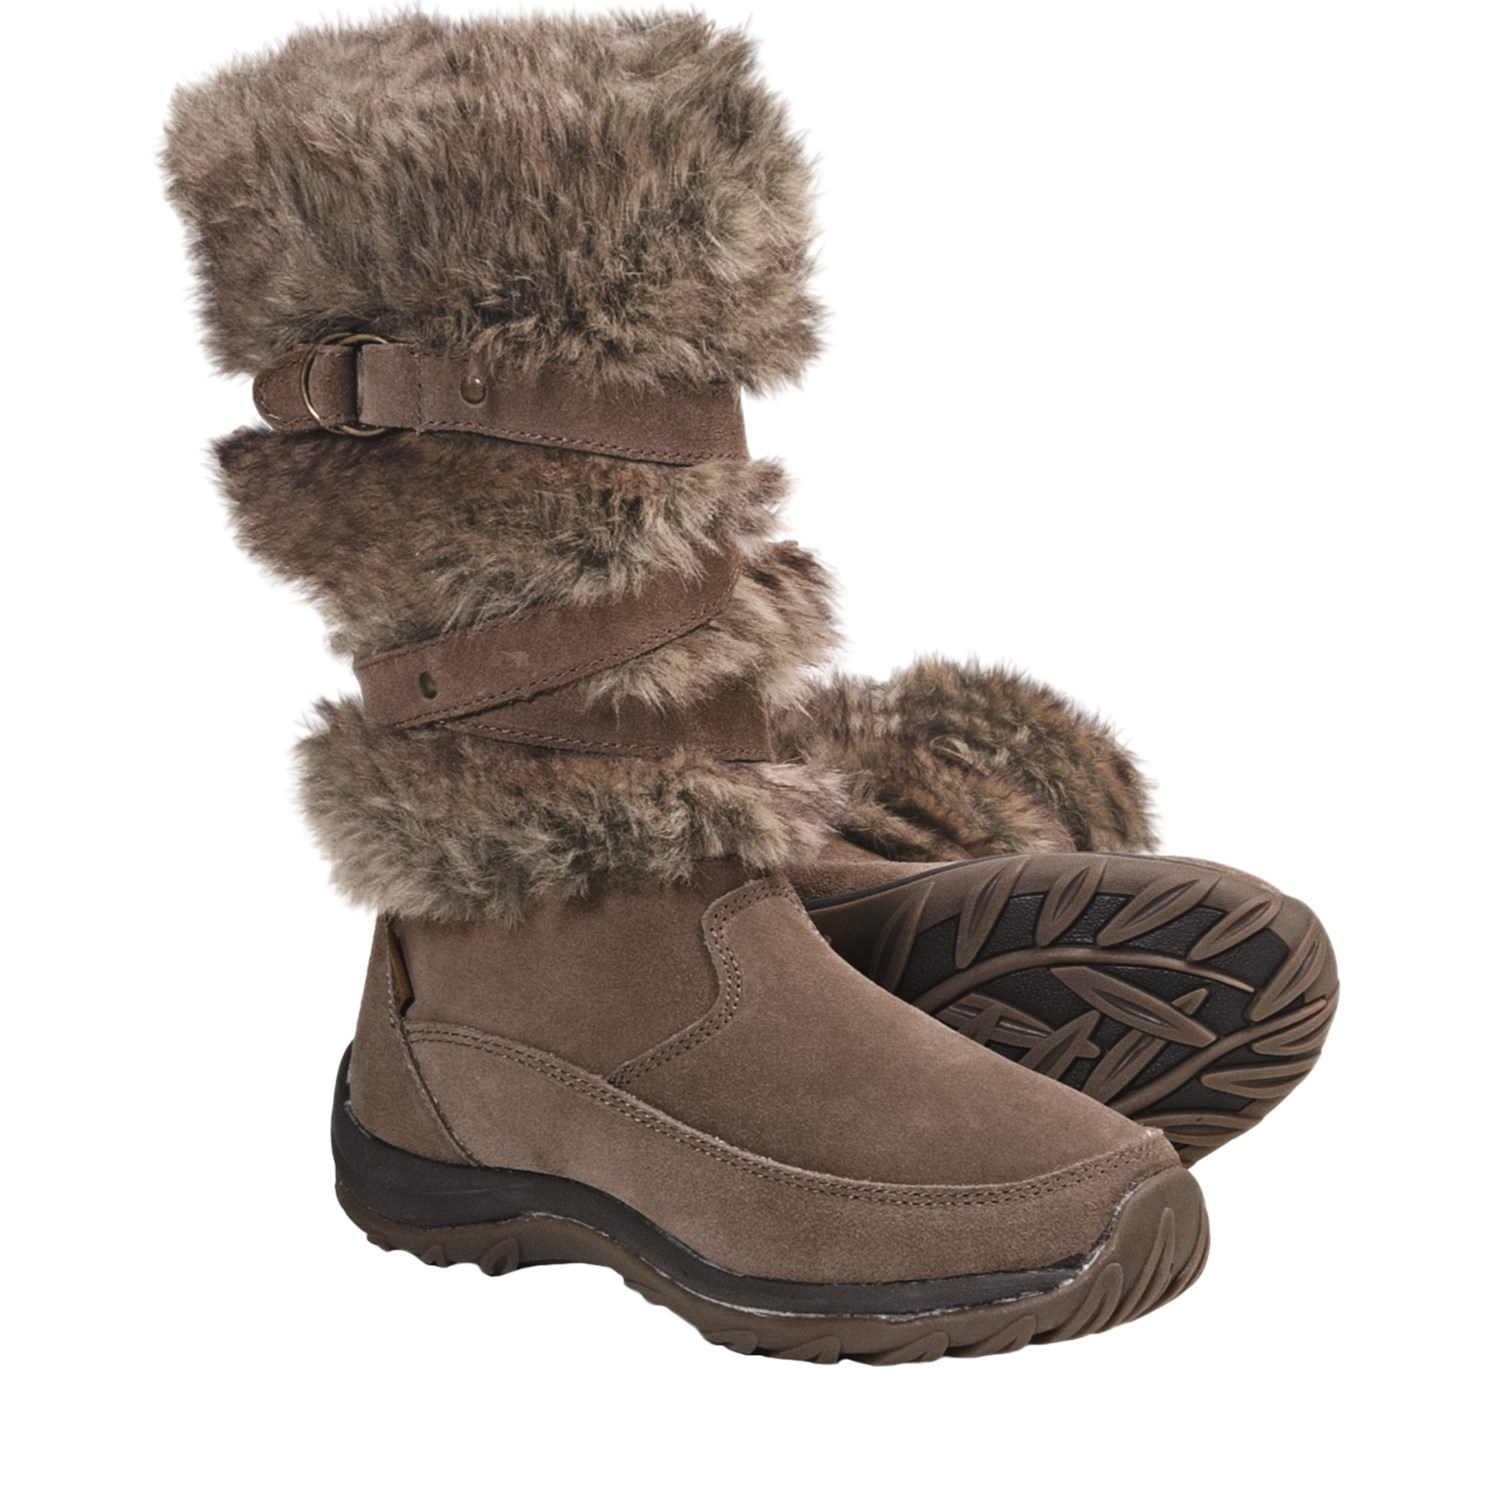 Model Find This Pin And More On Womens Winter Boots To Lower Blood Pressure Hypertension This Tall Boot Is Lined With A Faux Shearling That Is Soft Against The Skin And Traps Heat To Keep You Warm And Comfortable! Featuring Faux Fur Lining